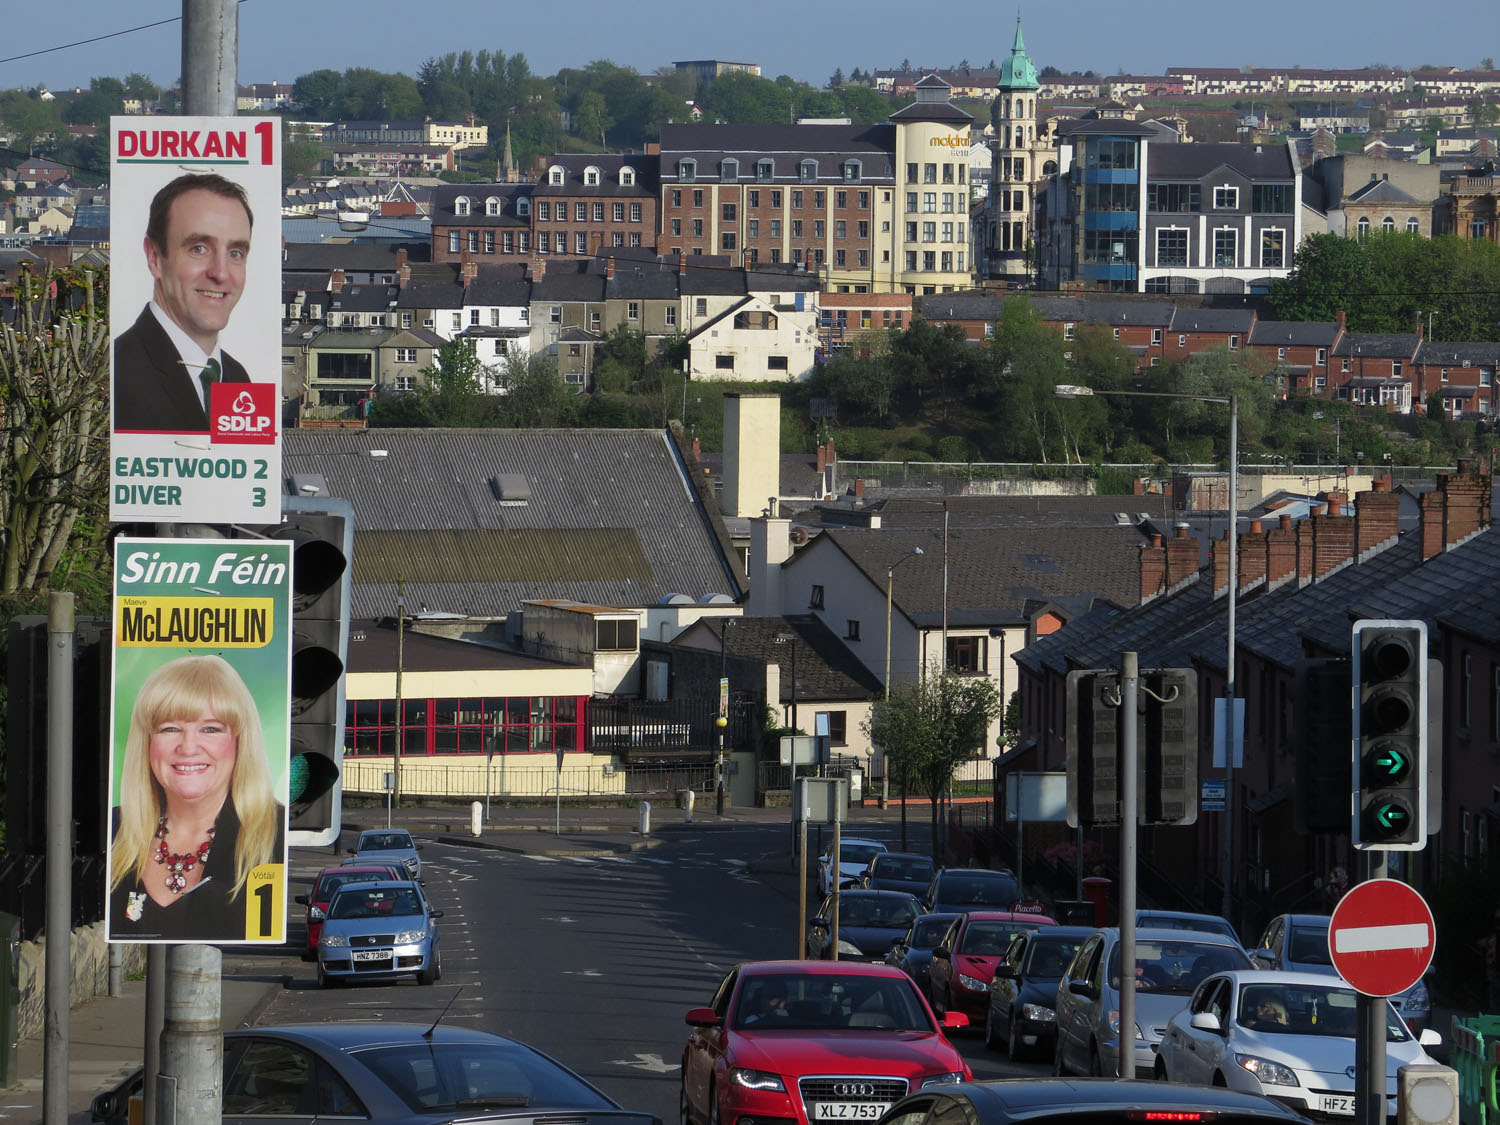 Northern-Ireland-Derry-Londonderry-Street-Political-Campaign-Ads